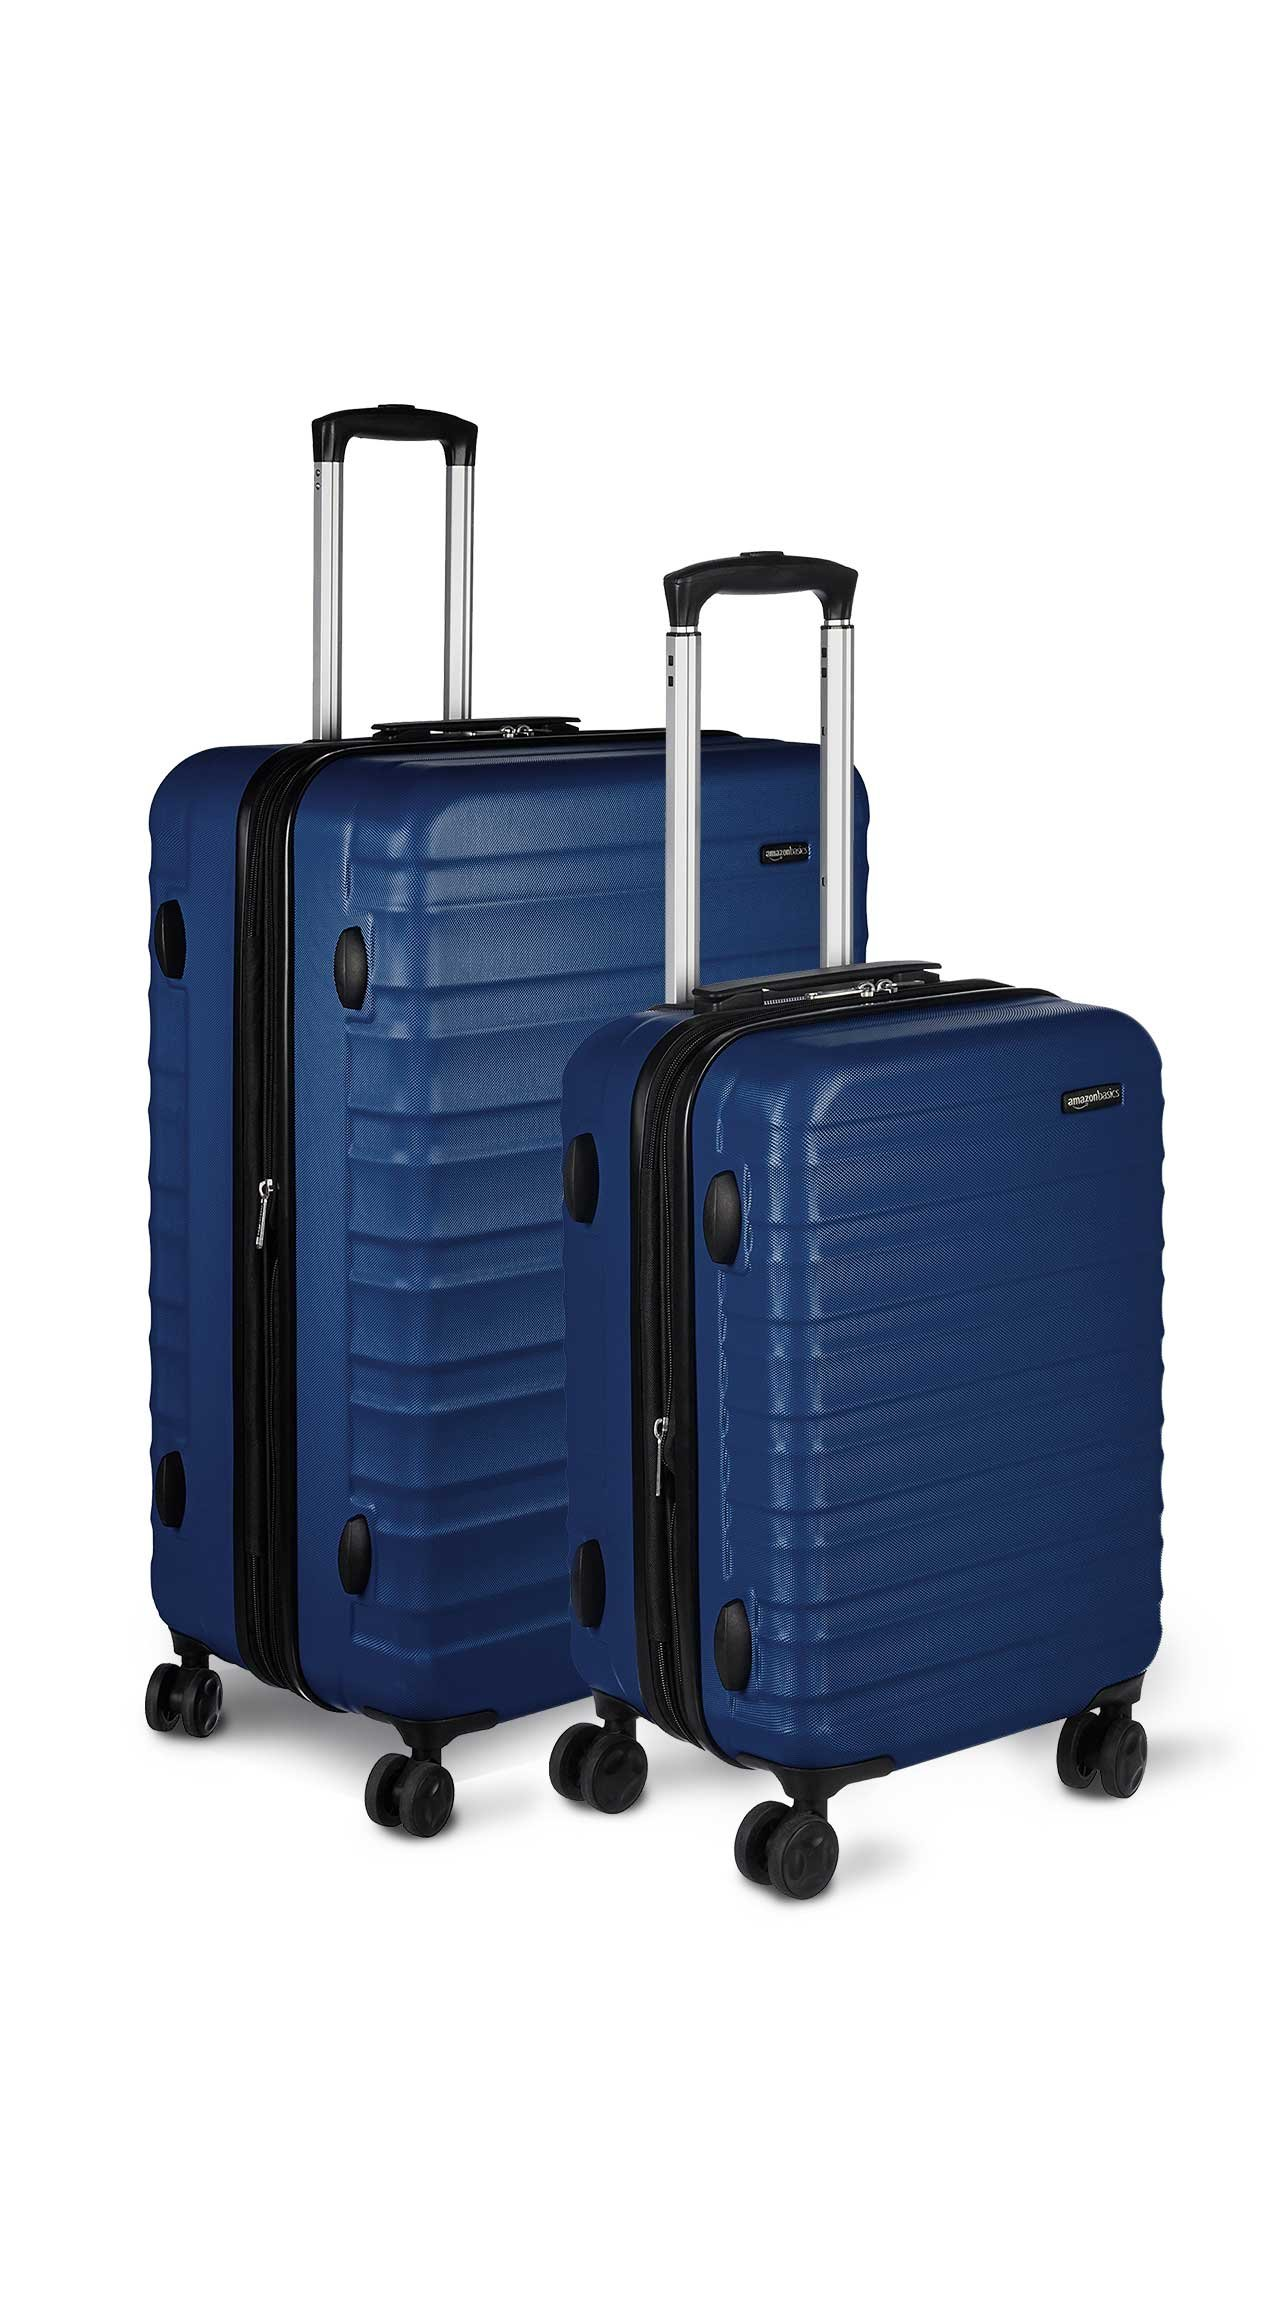 AmazonBasics 2 Piece Hardside Spinner Travel Luggage Suitcase Set - Navy by AmazonBasics